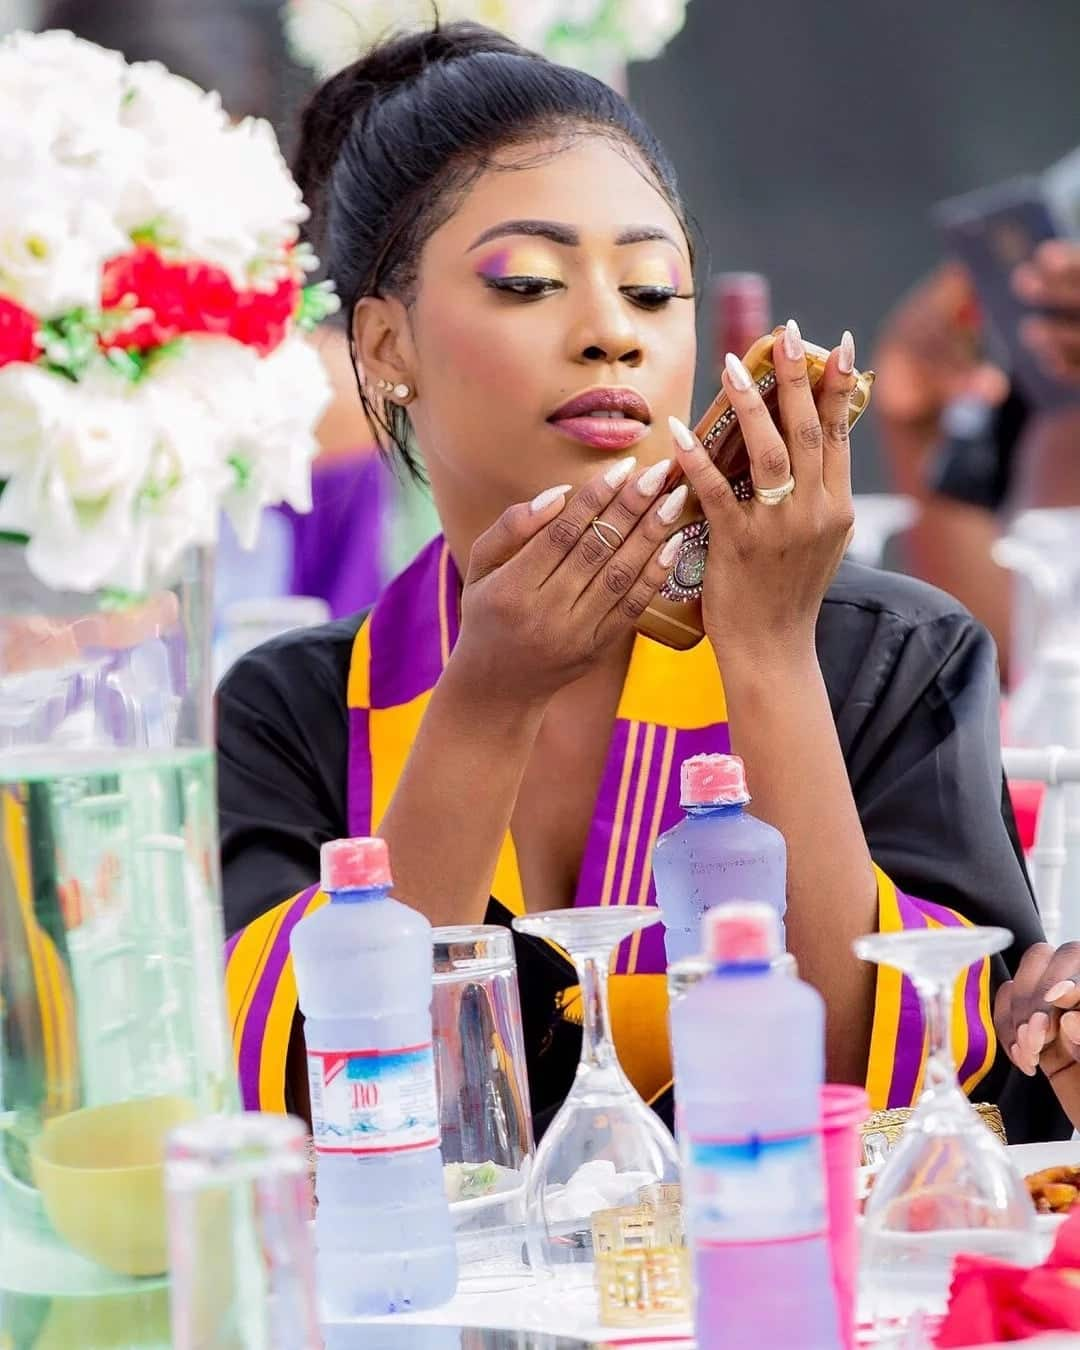 Selly Gaelley blends African and Asian style in this creative wedding guest fashion inspiration